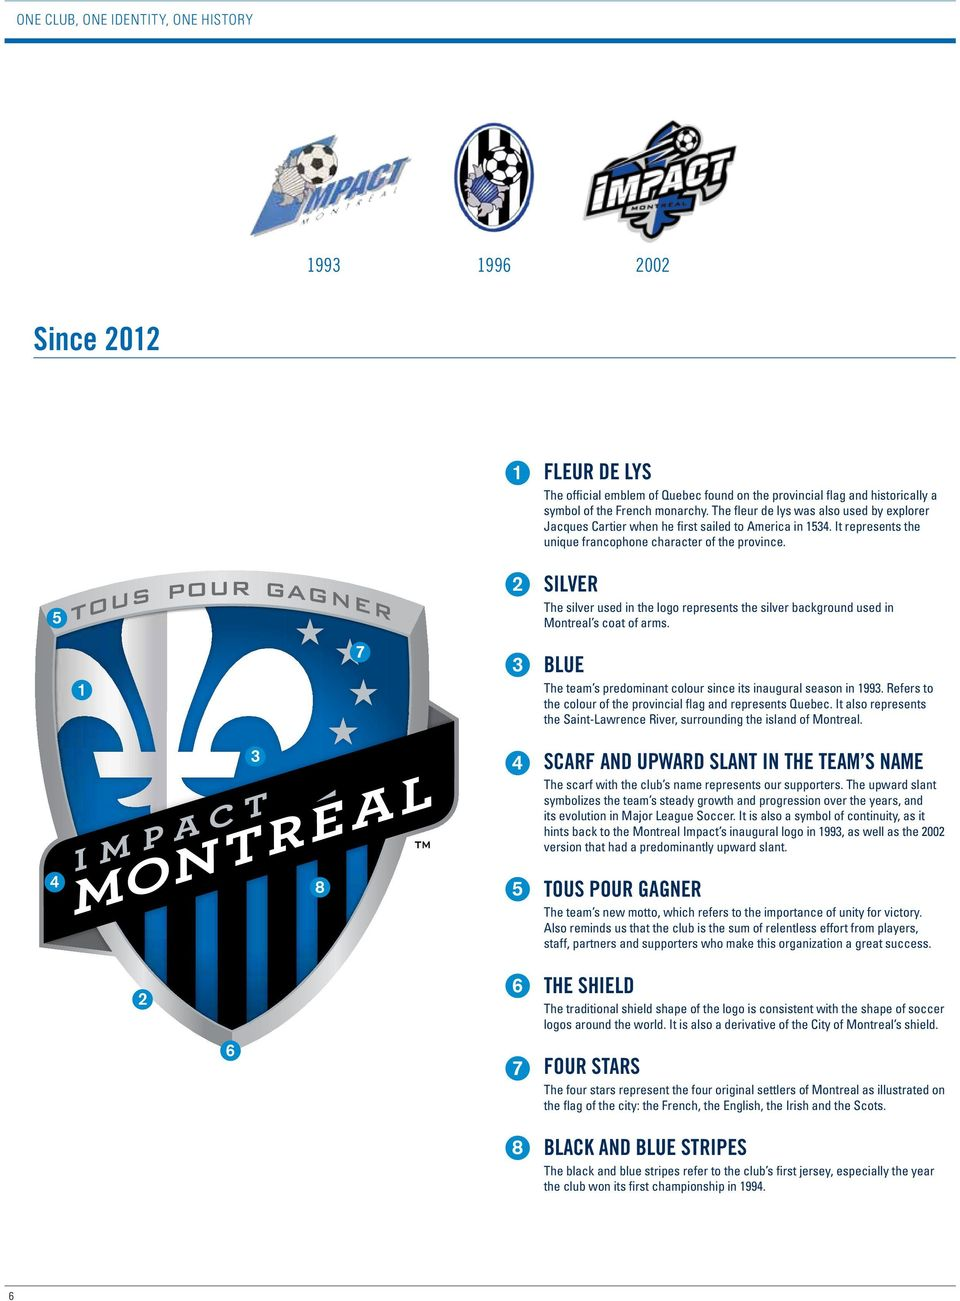 5 2 SILVER The silver used in the logo represents the silver background used in Montreal s coat of arms. 1 7 3 BLUE The team s predominant colour since its inaugural season in 1993.